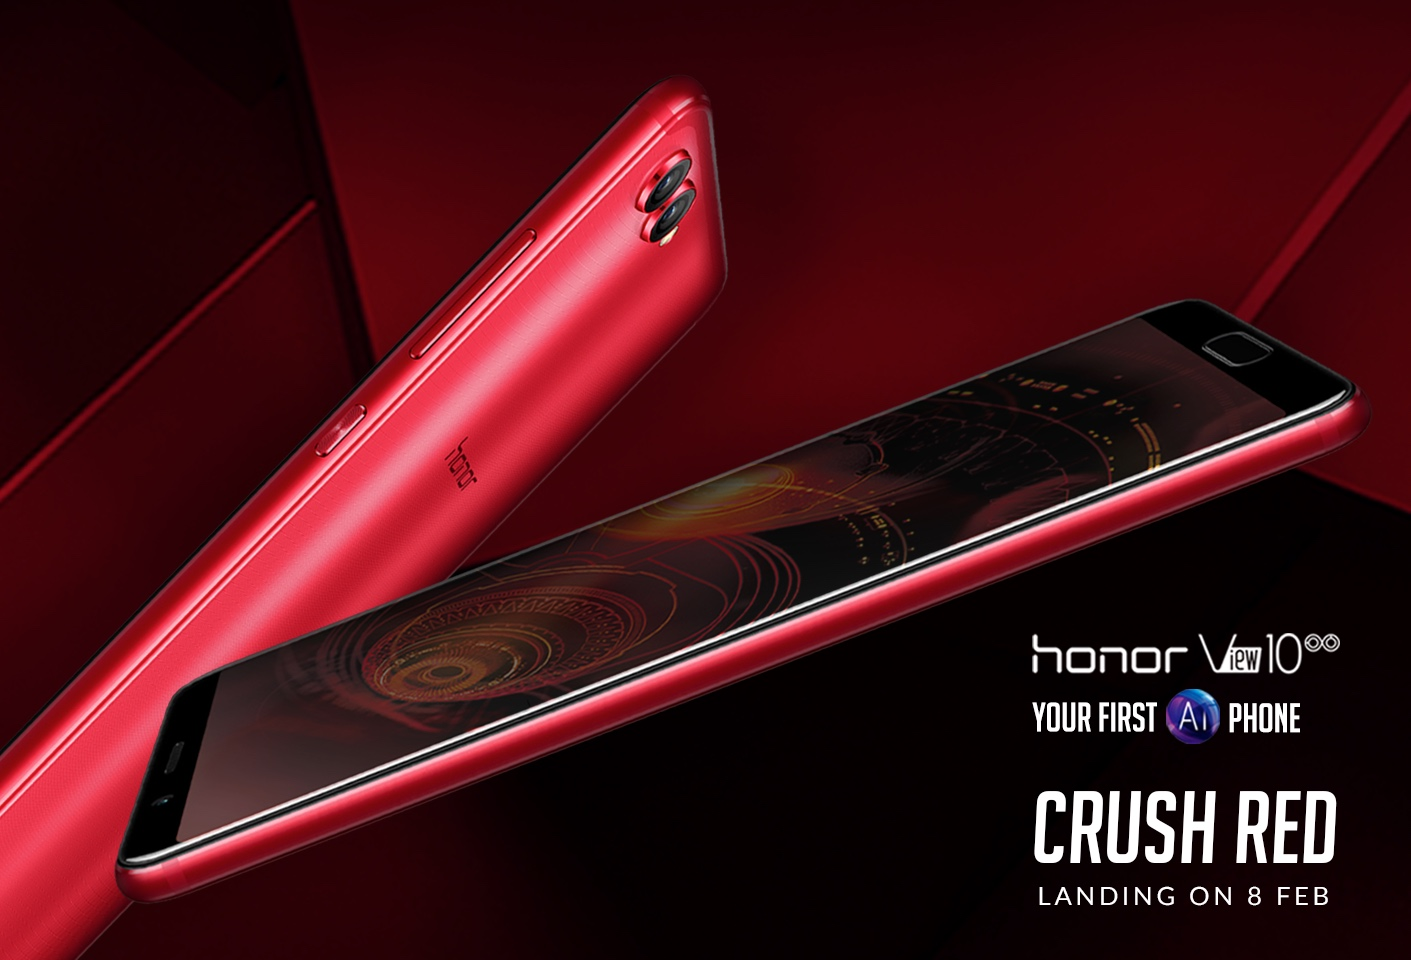 honor View10 Crush Red